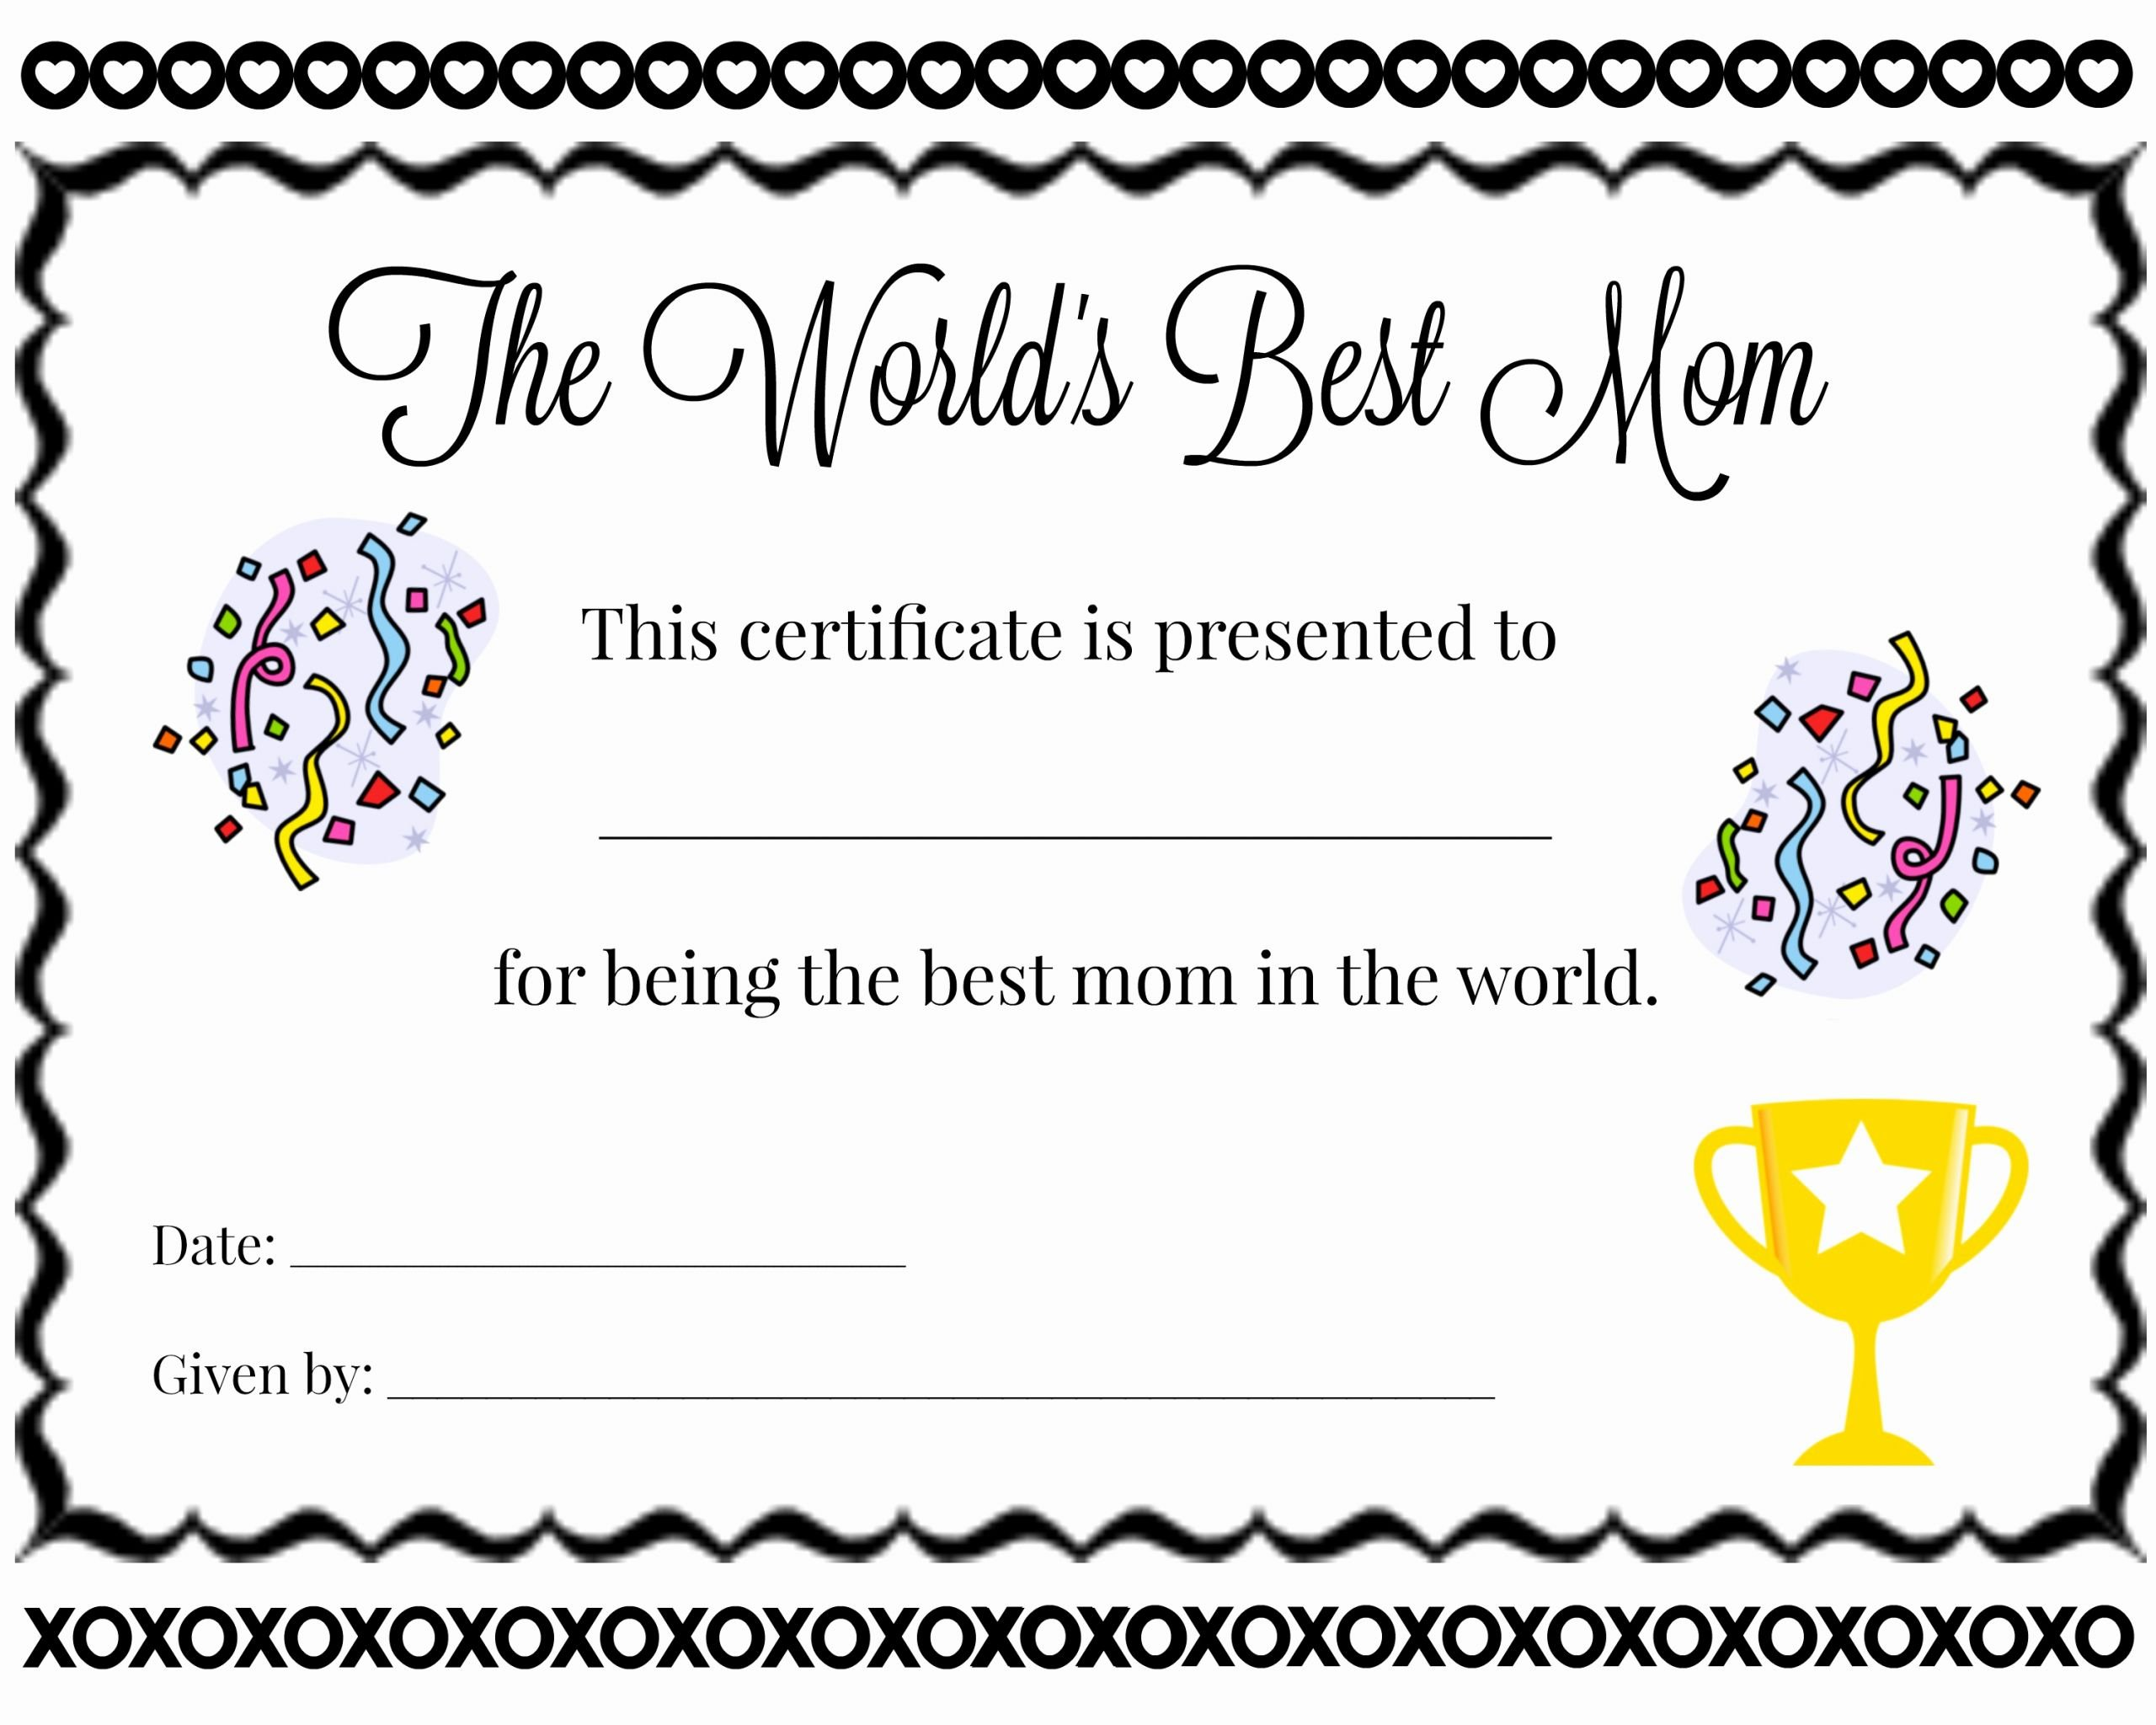 Best Mother Award Certificate Awesome Best Mom Certificate Free Printable Operation $40k